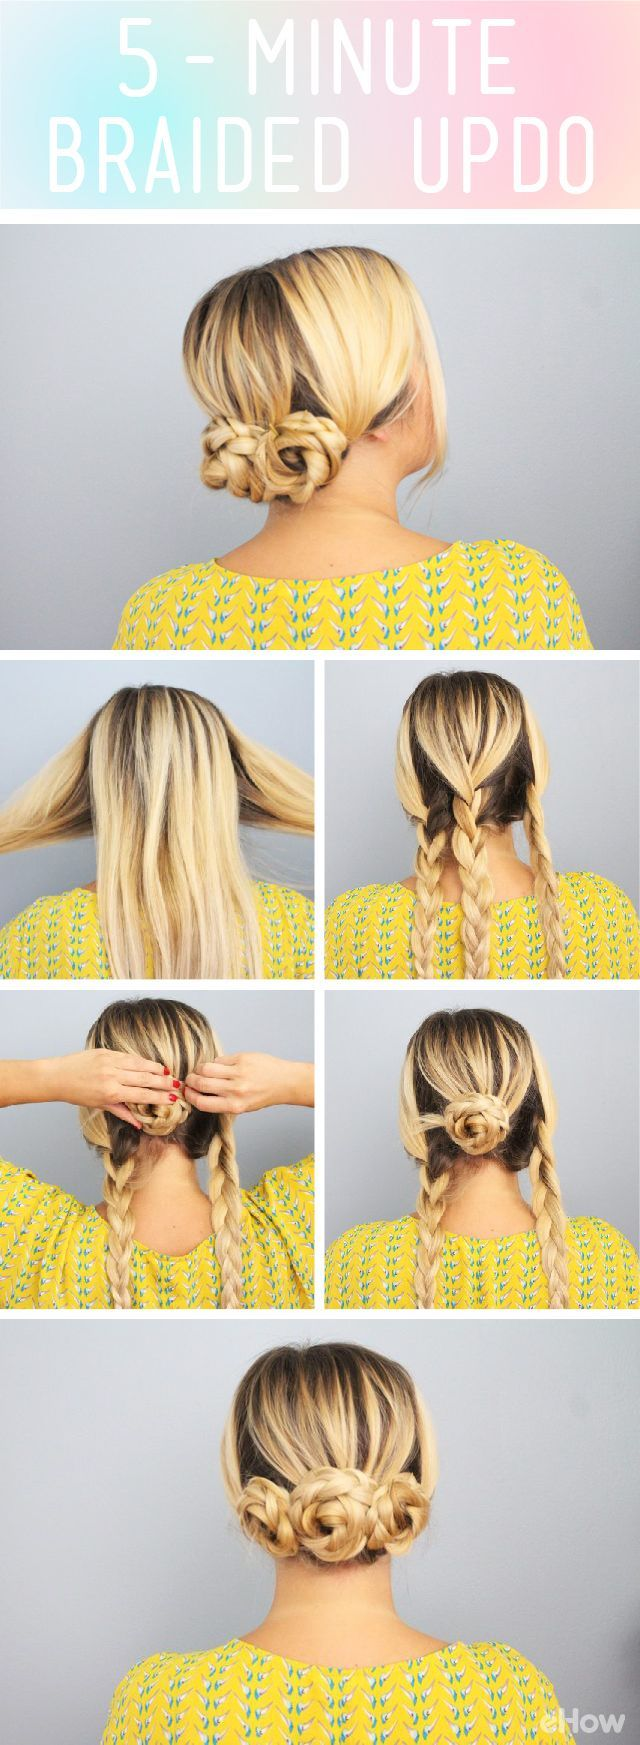 This adorable updo takes only minutes cute for a work or out with